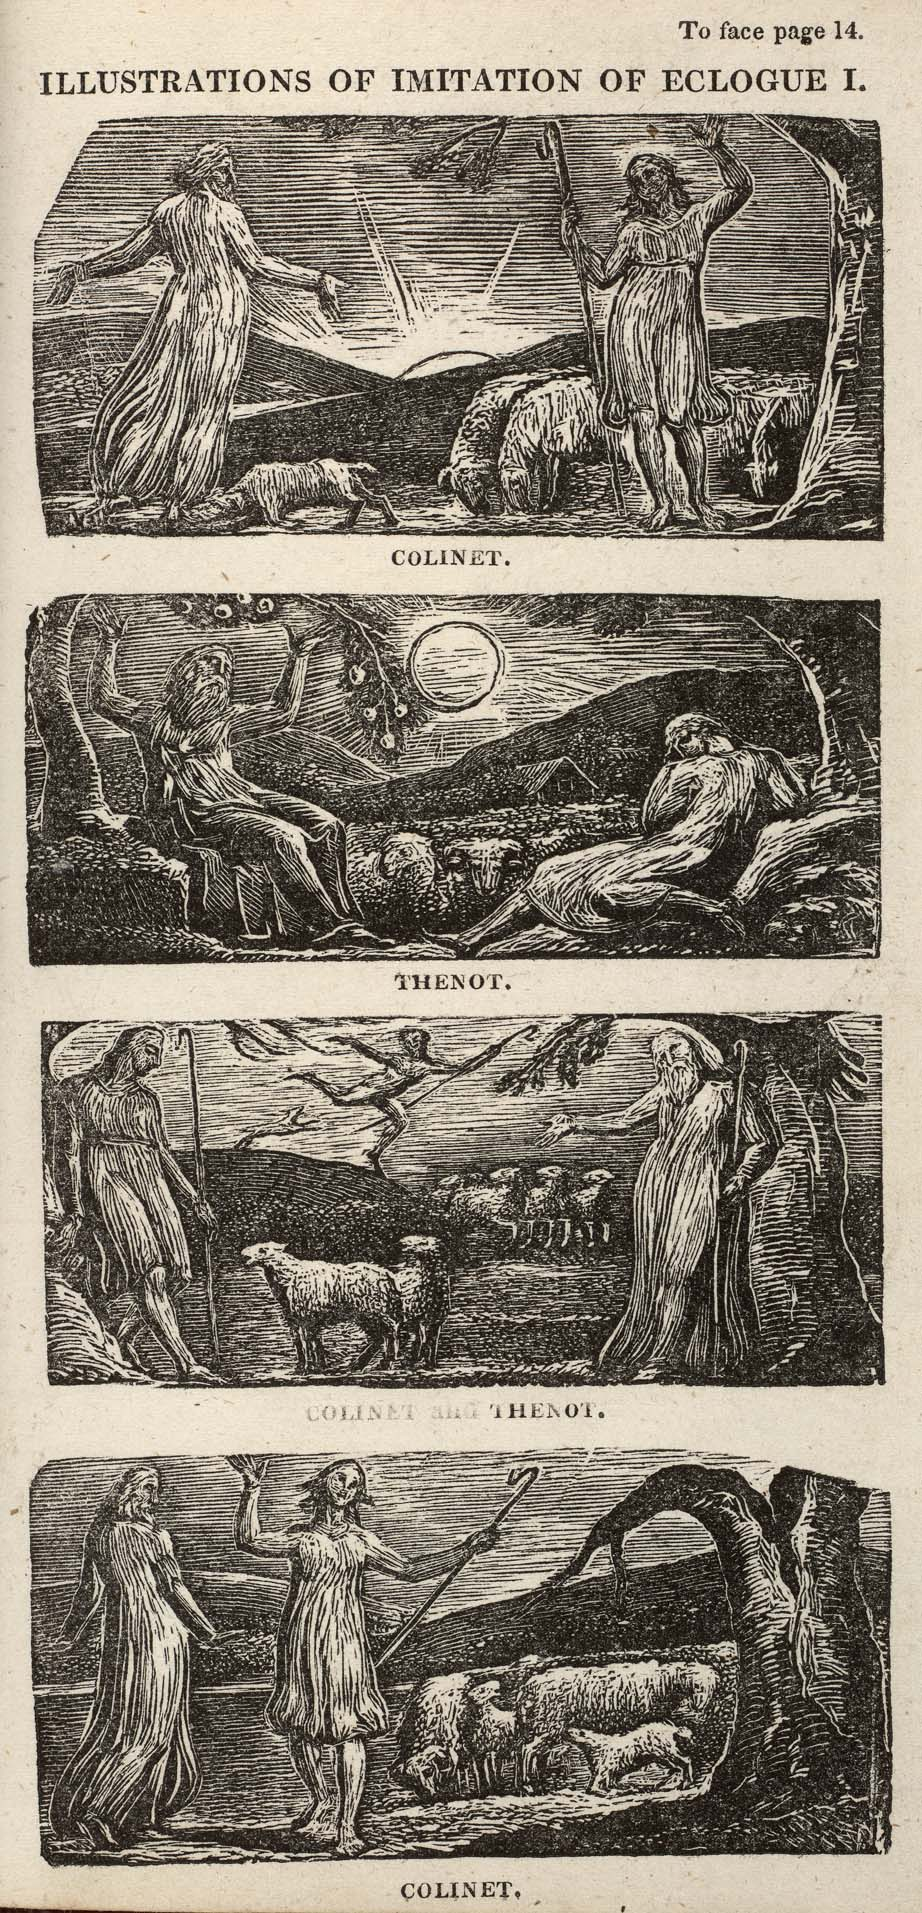 To face page 14. 			ILLUSTRATIONS OF IMITATION OF ECLOGUE I. 			COLINET. 			THENOT. 			COLINET and THENOT. 			COLINET.